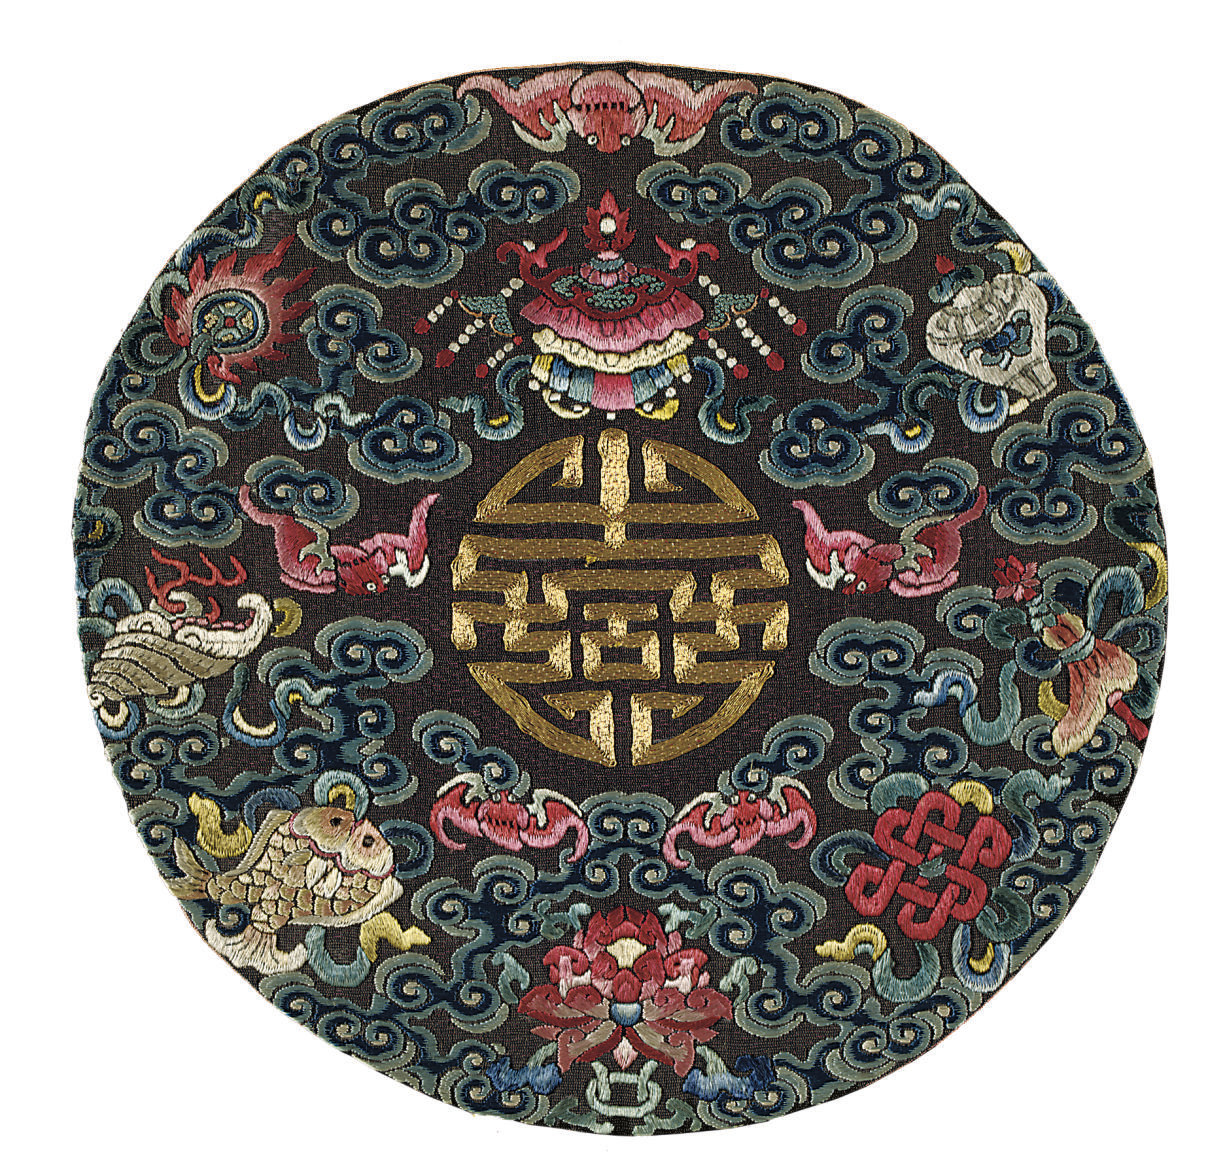 TWO EMBROIDERED ROUNDELS